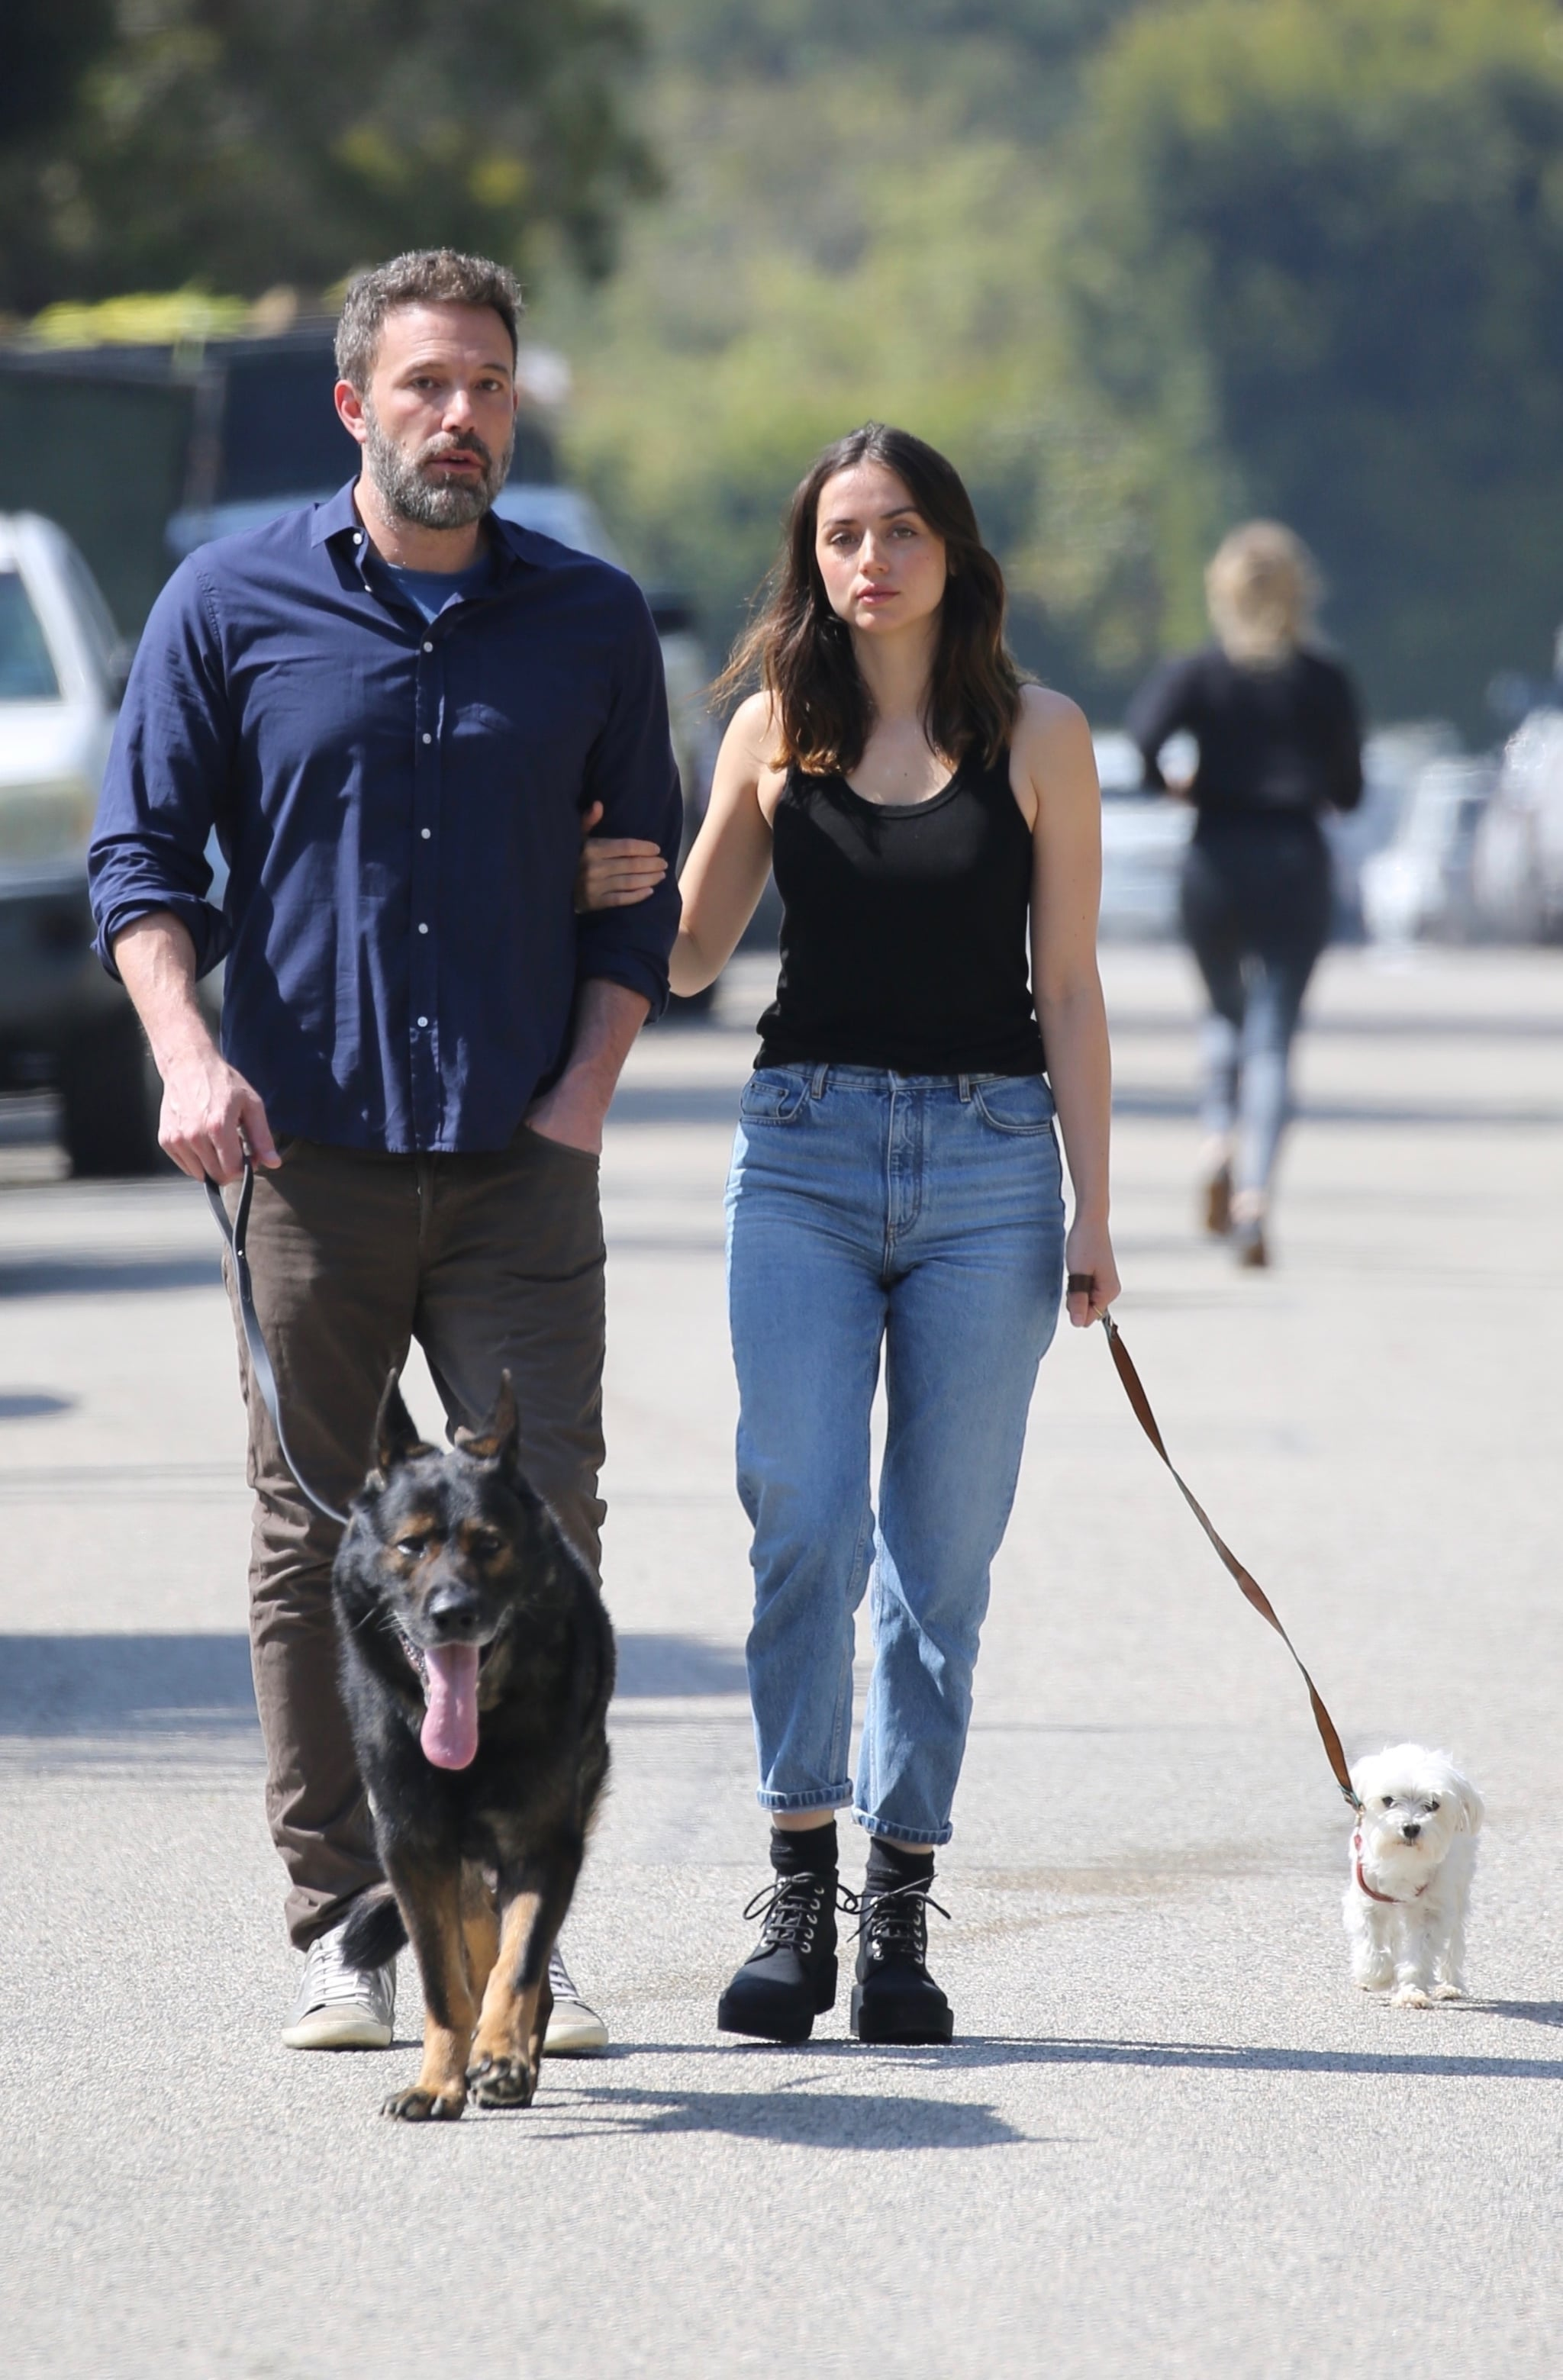 Brentwood, CA  - Ben Affleck takes a walk with girlfriend Ana de Armas this morning with their dogs. Ben stopped to take a photos of photographers on the street bringing a smile to Ana's face.Pictured: Ben Affleck, Ana de ArmasBACKGRID USA 1 APRIL 2020 BYLINE MUST READ: Paparazzi Podcast / BACKGRIDUSA: +1 310 798 9111 / usasales@backgrid.comUK: +44 208 344 2007 / uksales@backgrid.com*UK Clients - Pictures Containing ChildrenPlease Pixelate Face Prior To Publication*